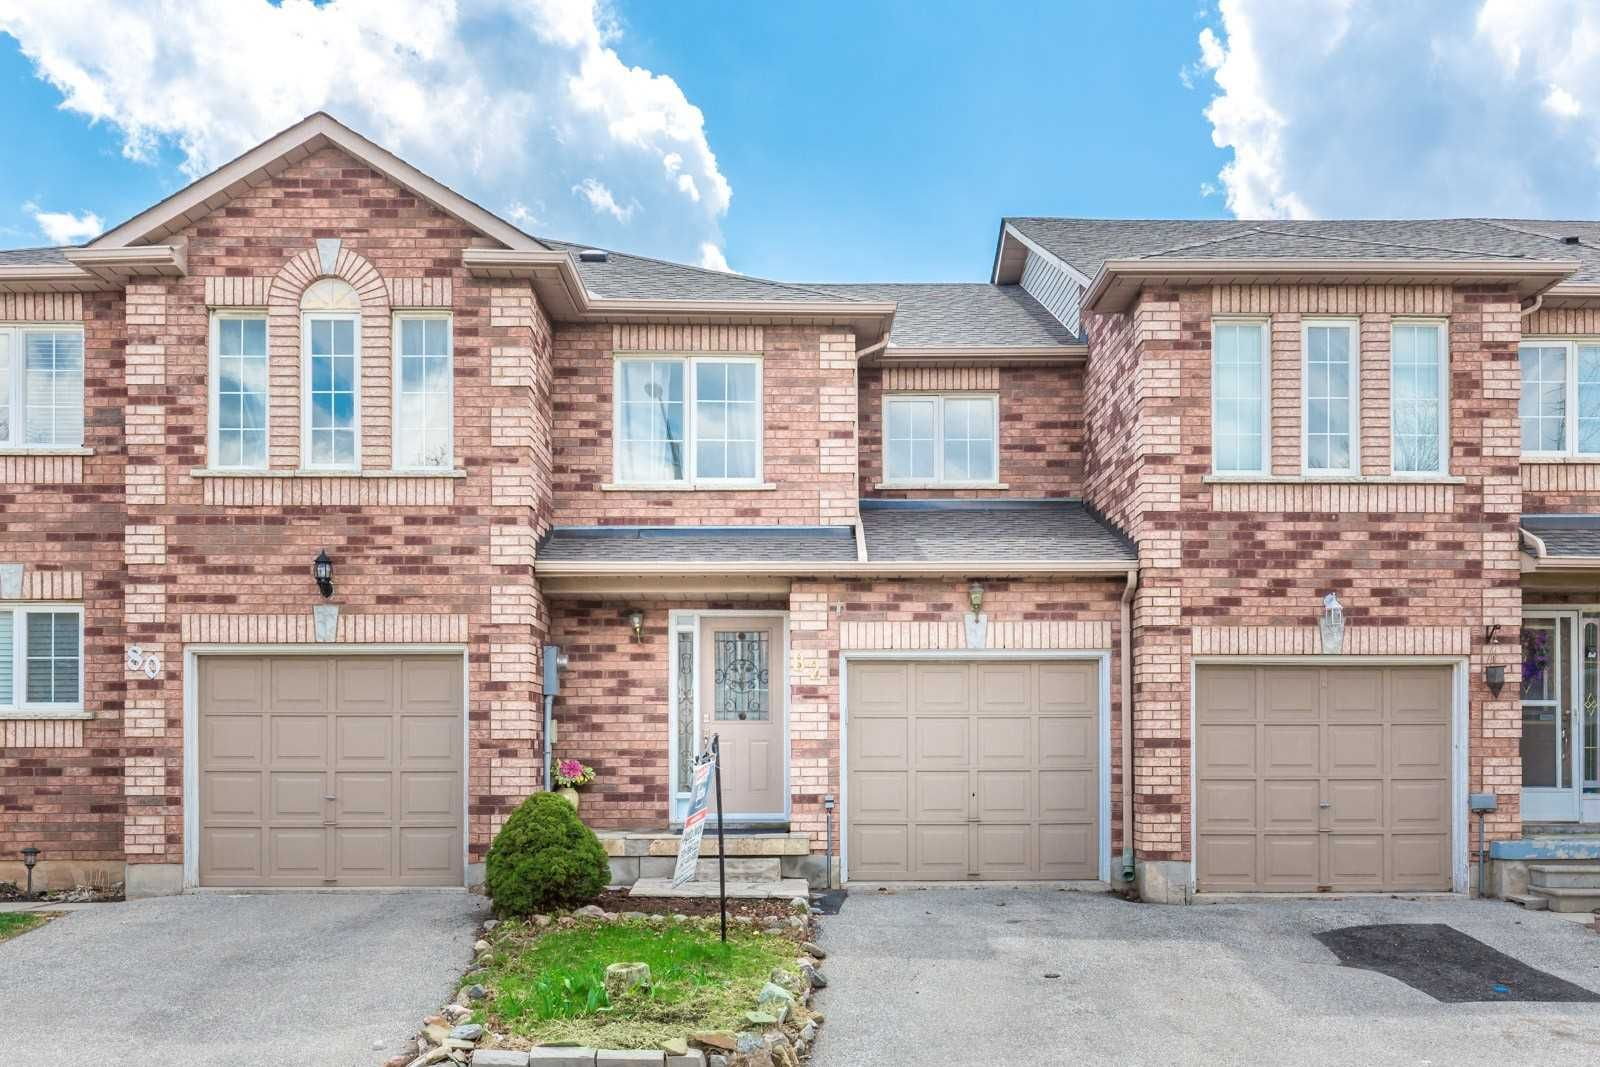 Main Photo: 82 100 Brickyard Way in Brampton: Brampton North Condo for lease : MLS®# W4903705